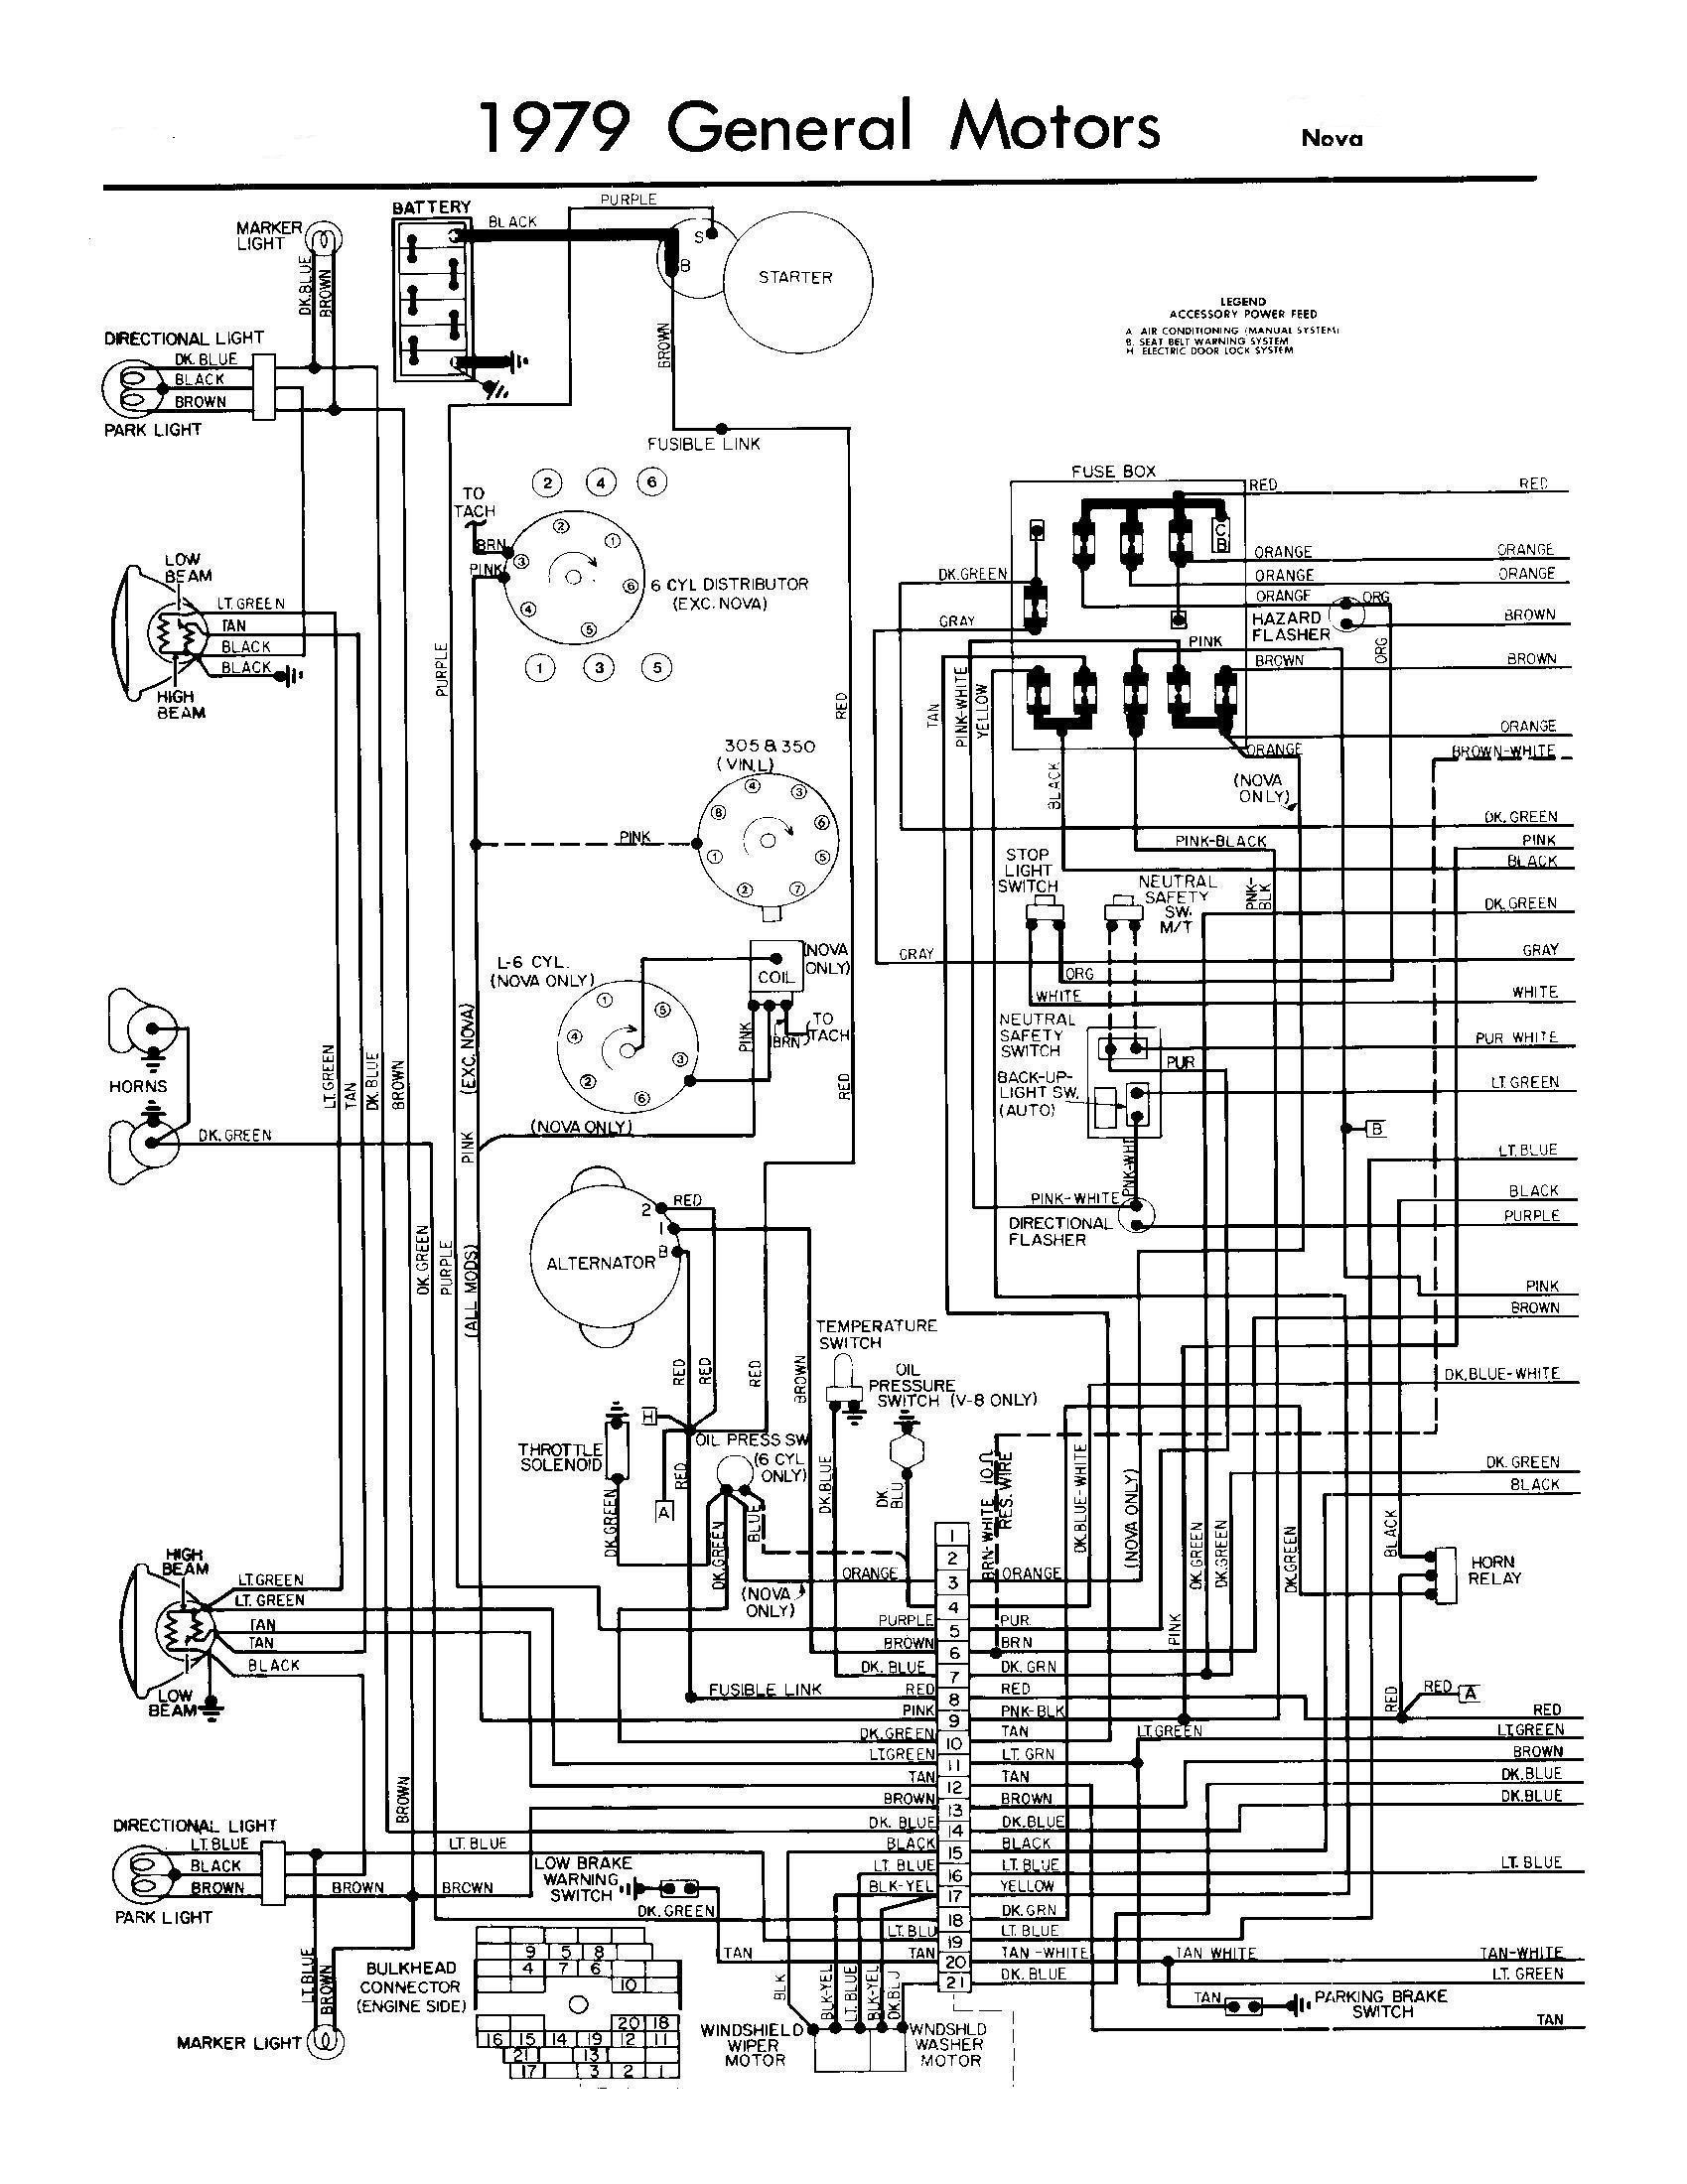 1999 Lexus Es300 Fuse Box Diagram Wiring Library 1991 Ls400 Lzk Gallery Data Schema U2022 Rh Exoticterra Co